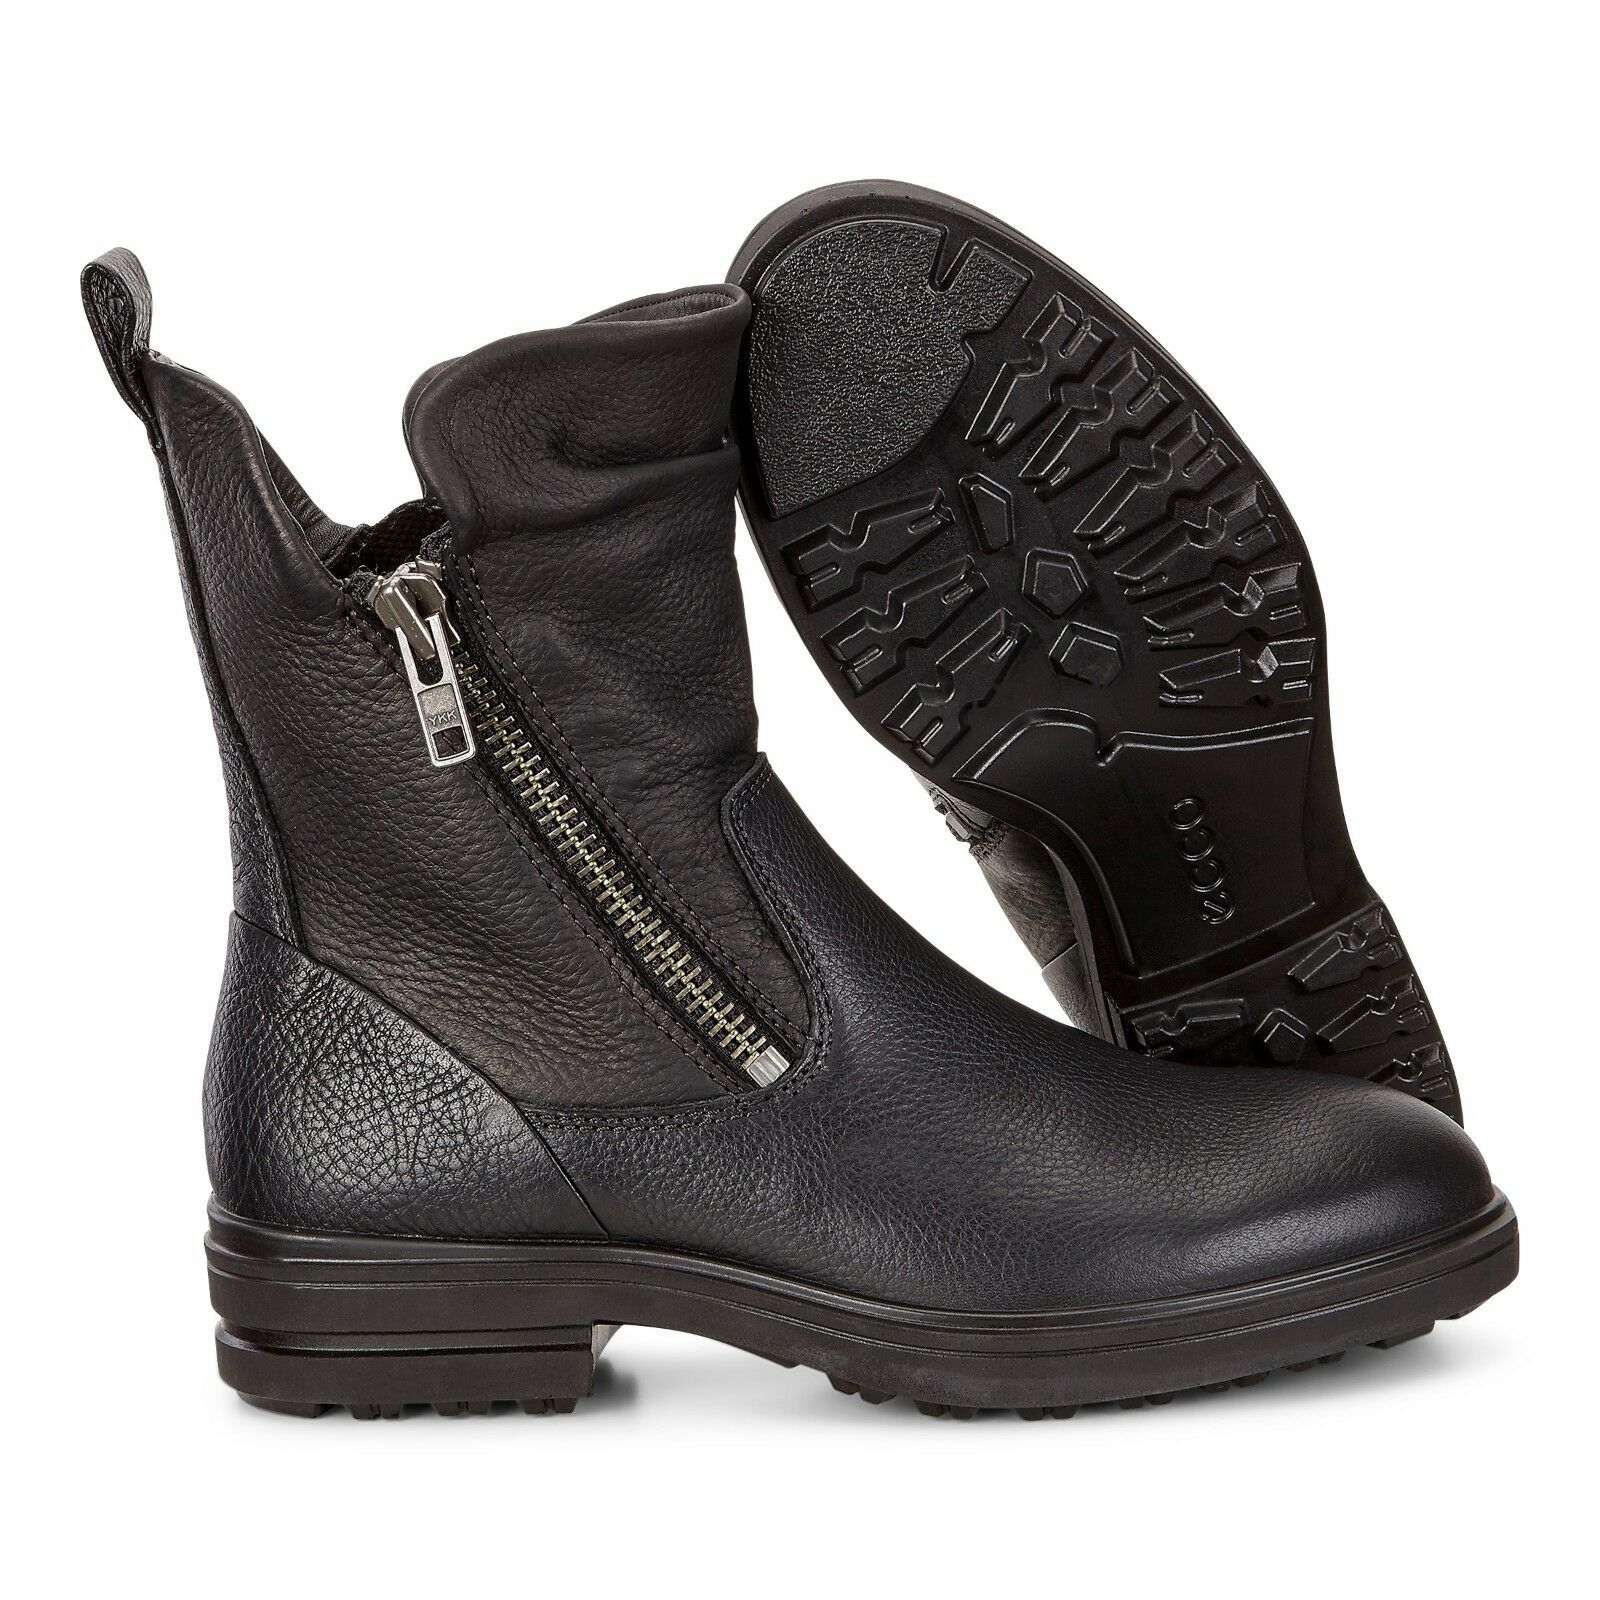 Ecco Women's Euro Size 41 Zoe Mid Zip Boots Black Leather US Size 10/10.5 New